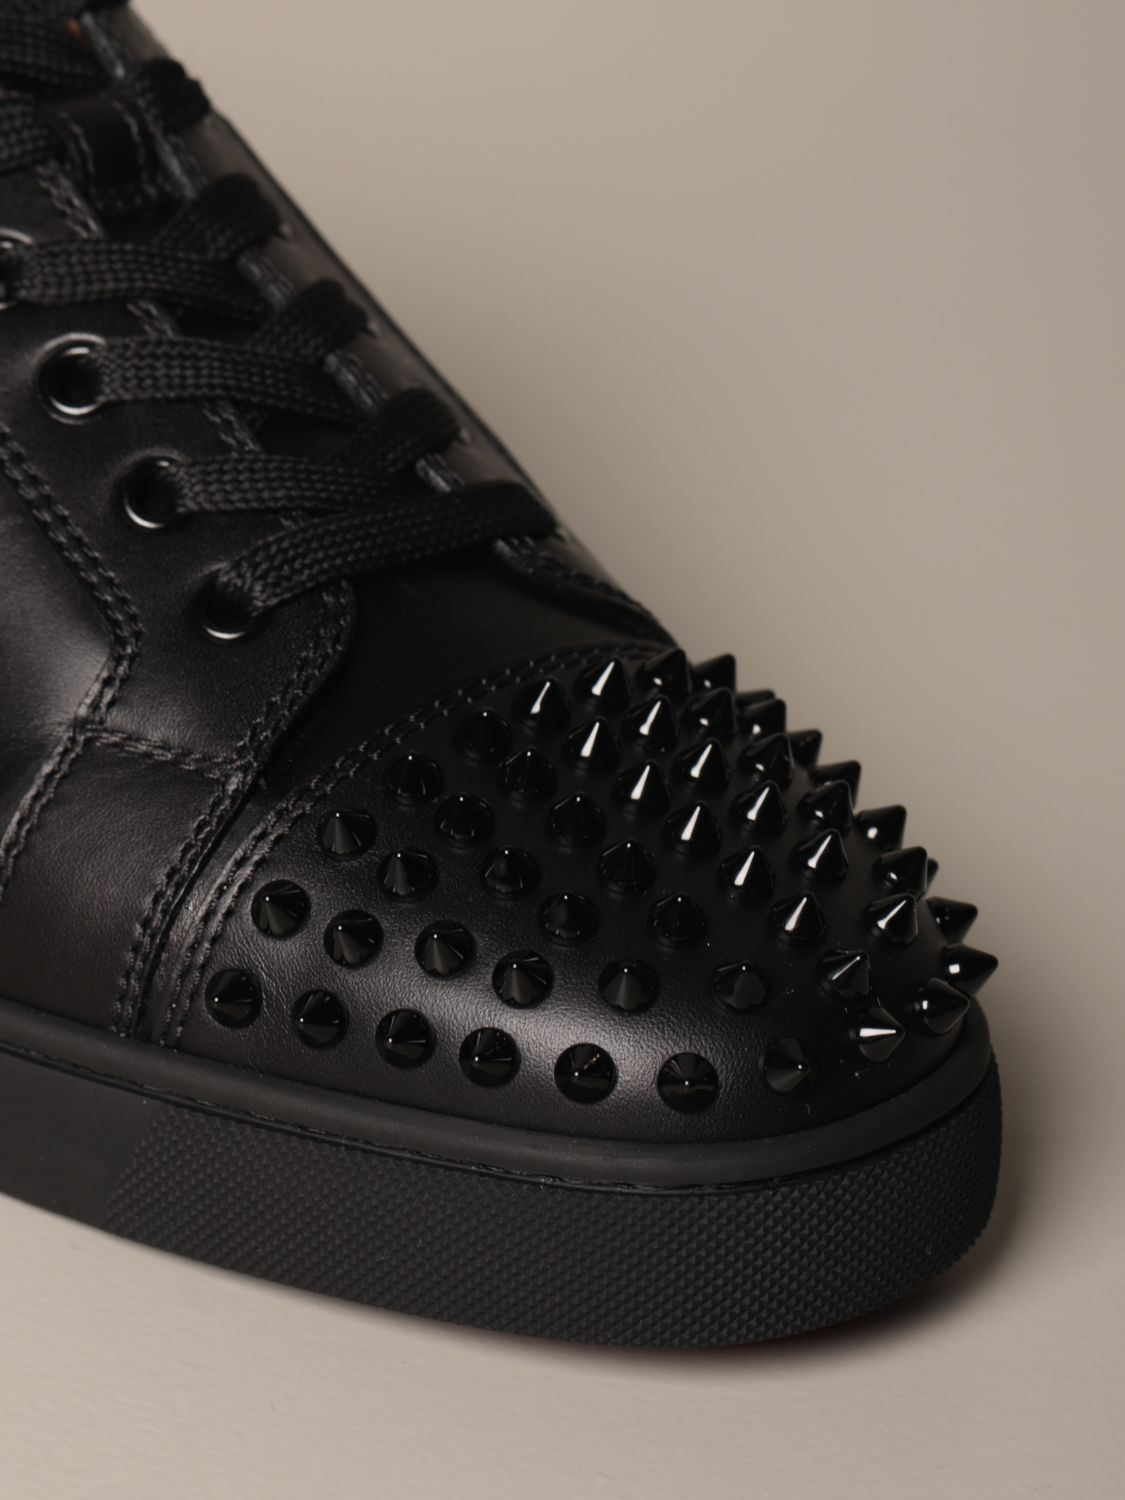 Sneakers Christian Louboutin: Christian Louboutin Louis Junior sneakers in studded leather black 4